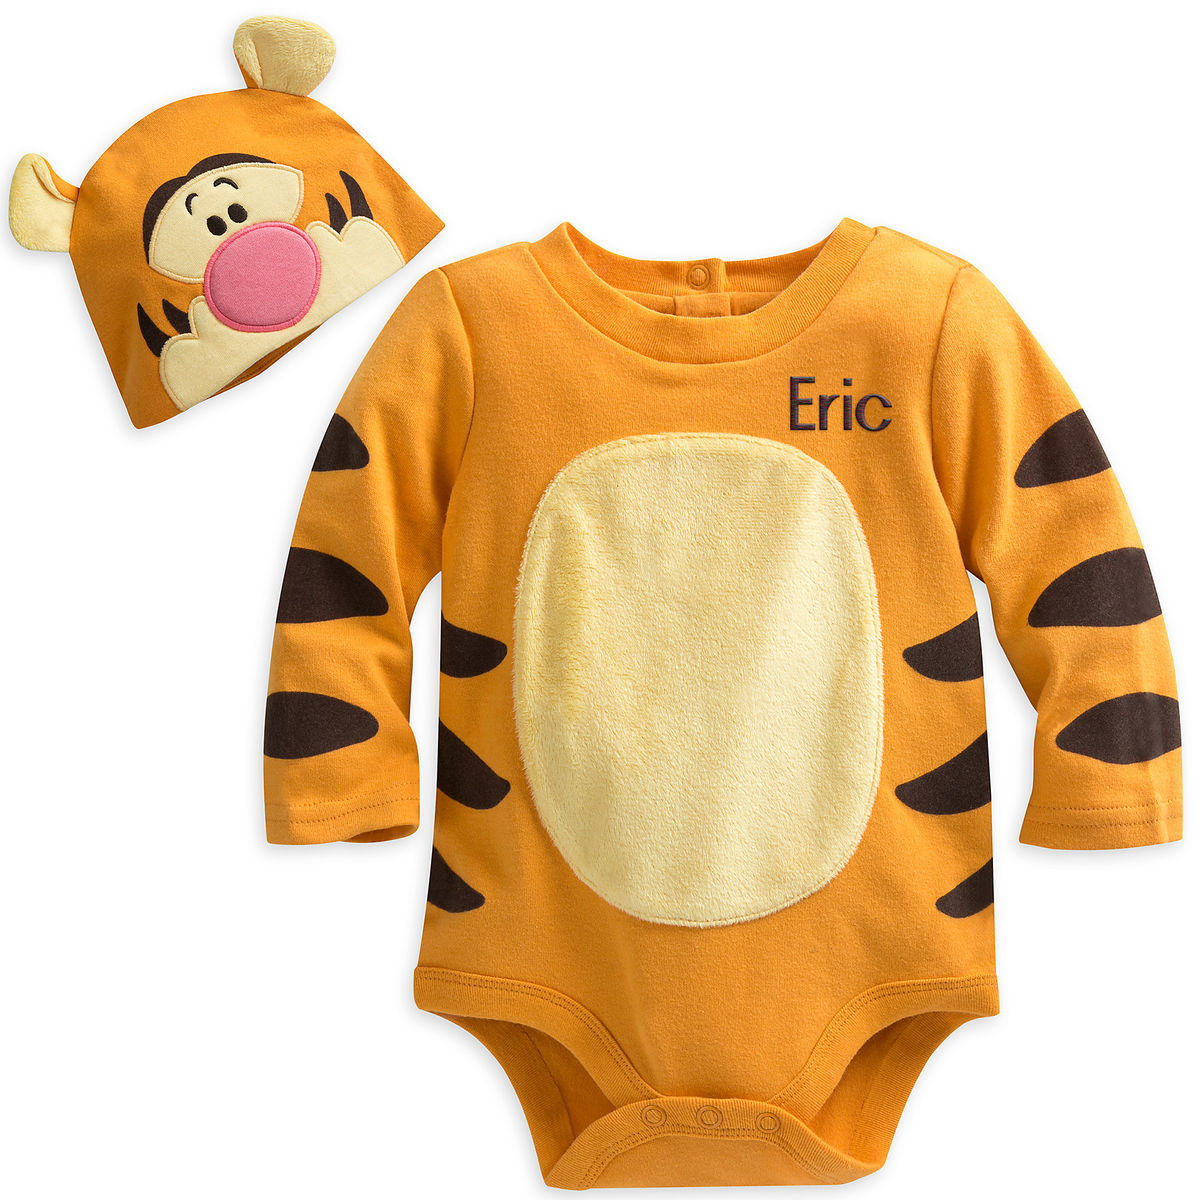 7eec23ac722 Product Image of Tigger Disney Cuddly Bodysuit Costume for Baby -  Personalizable   1